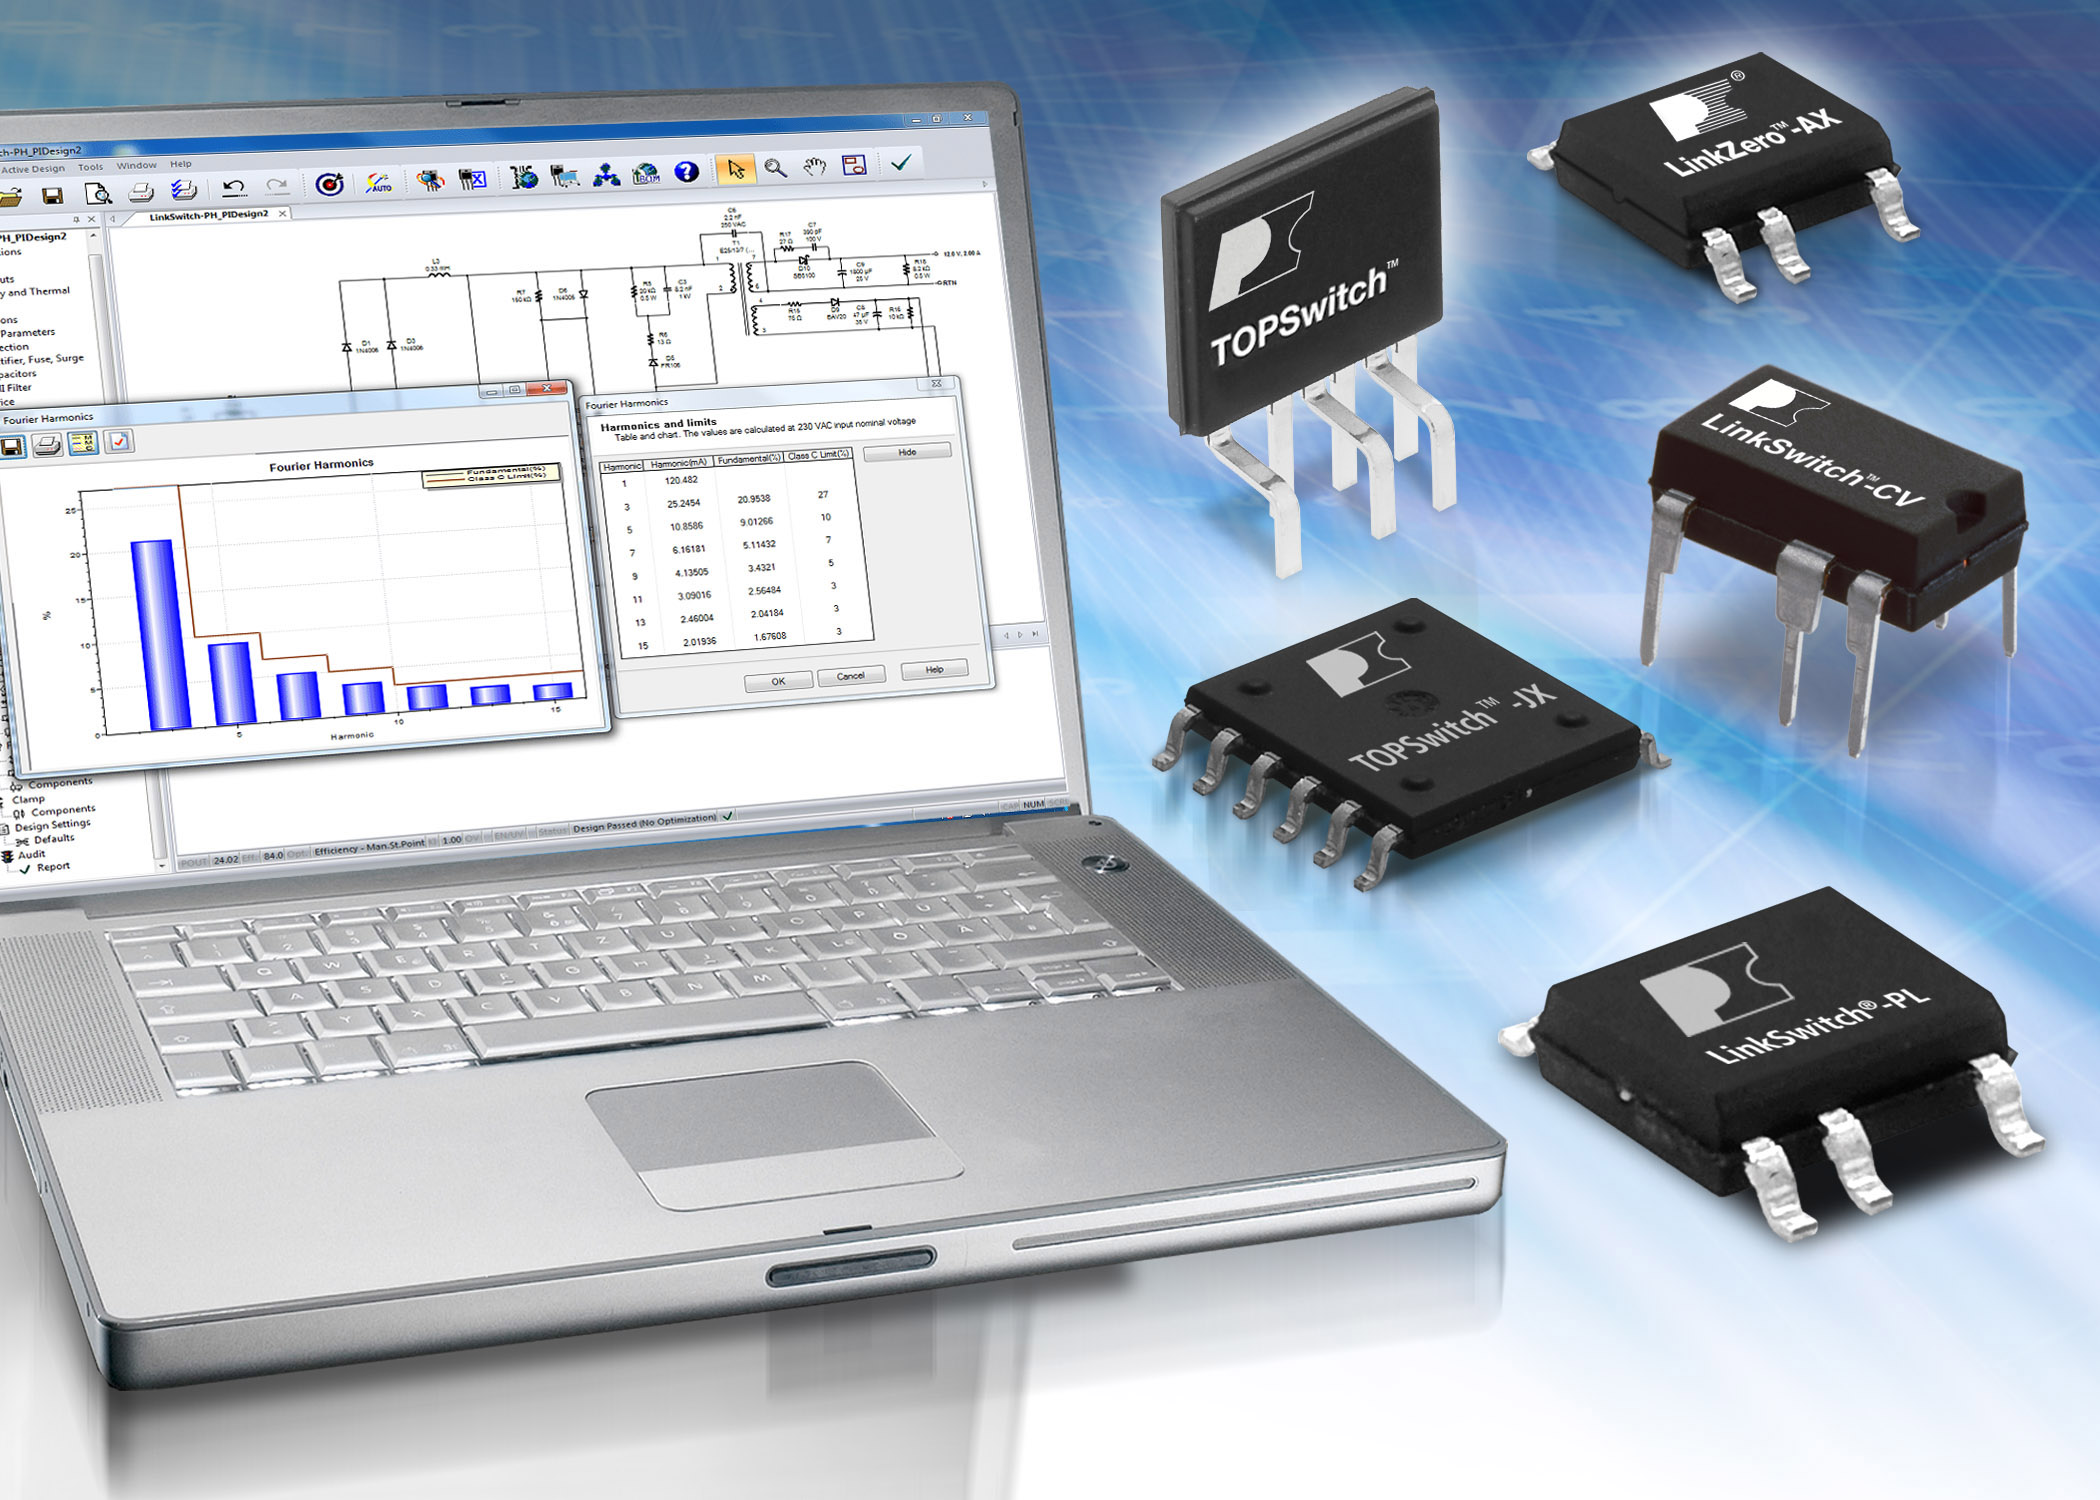 Power Integrations debuts  power supply design software that supports LED lighting at APEC 2013